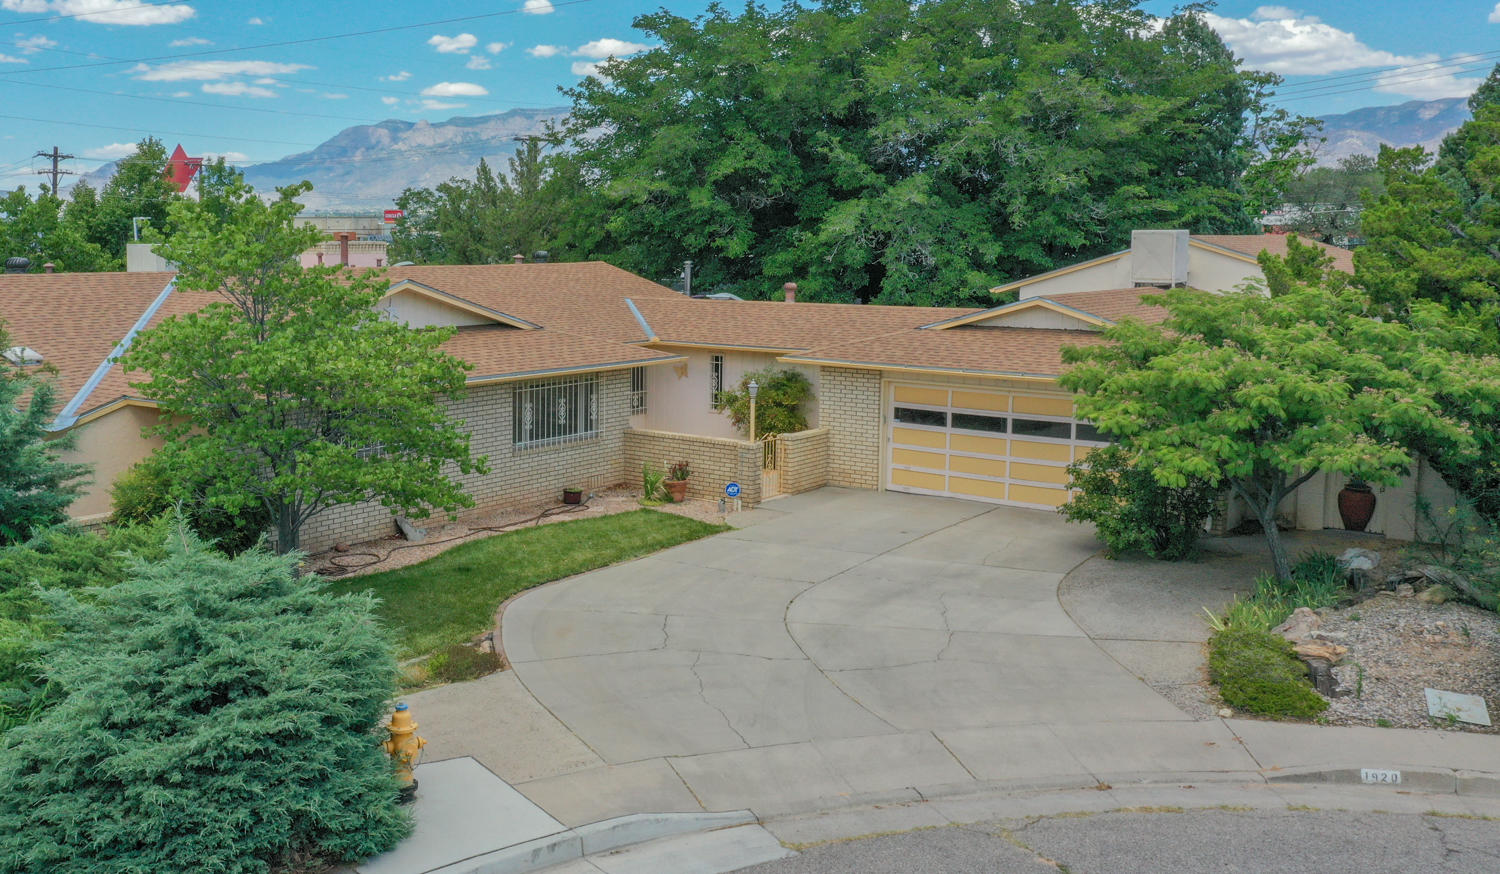 Looking for more room? This late mid-century modern, with classic touches and more built in cabinets than you can imagine holds true to its '60s retro vibe! The sprawling .388 acre corner lot with not one, but TWO, backyard alley access gates, one leading into the gated 720 SqFt RV parking and garage/shop.  24X30 shop even has its own separate evaporative cooler. This in addition to 2 car garage with extra storage and office. Kitchen was remodeled in the 90s with custom-built oak cabinets, newer Dacor glass ceramic electric cooktop, vent hood to exterior, newer Bosch dishwasher, enormous side-by-side SUB-ZERO refrigerator/freezer. Veggie sink and pantry, breakfast bar, and instant hot water. SEE MORE